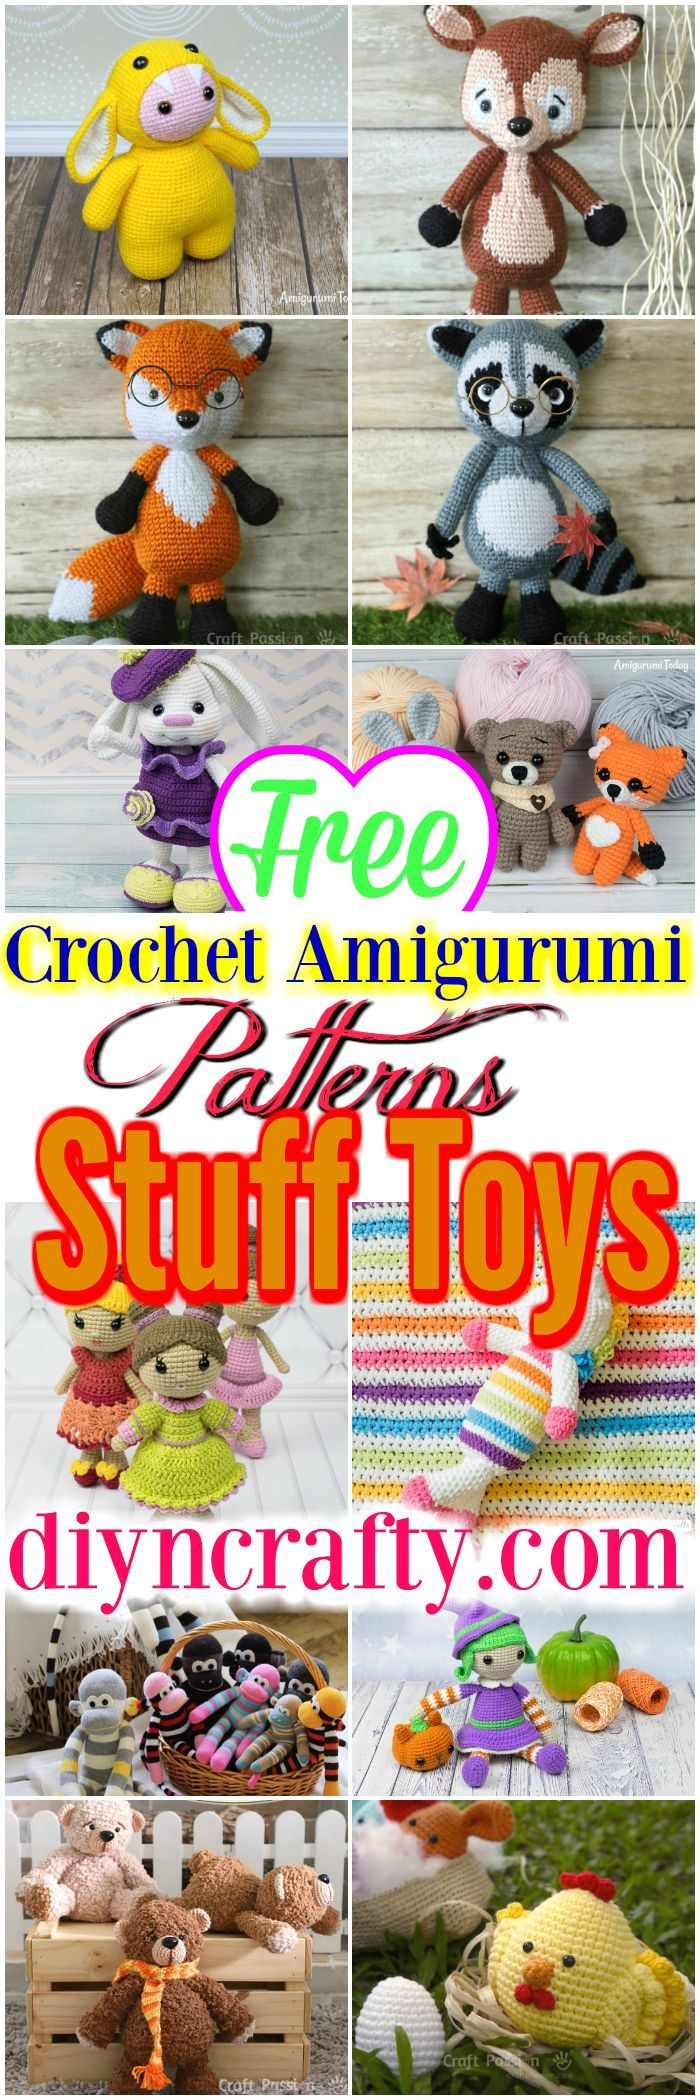 Here you will find interesting ideas and lots of free amigurumi patterns and ste…